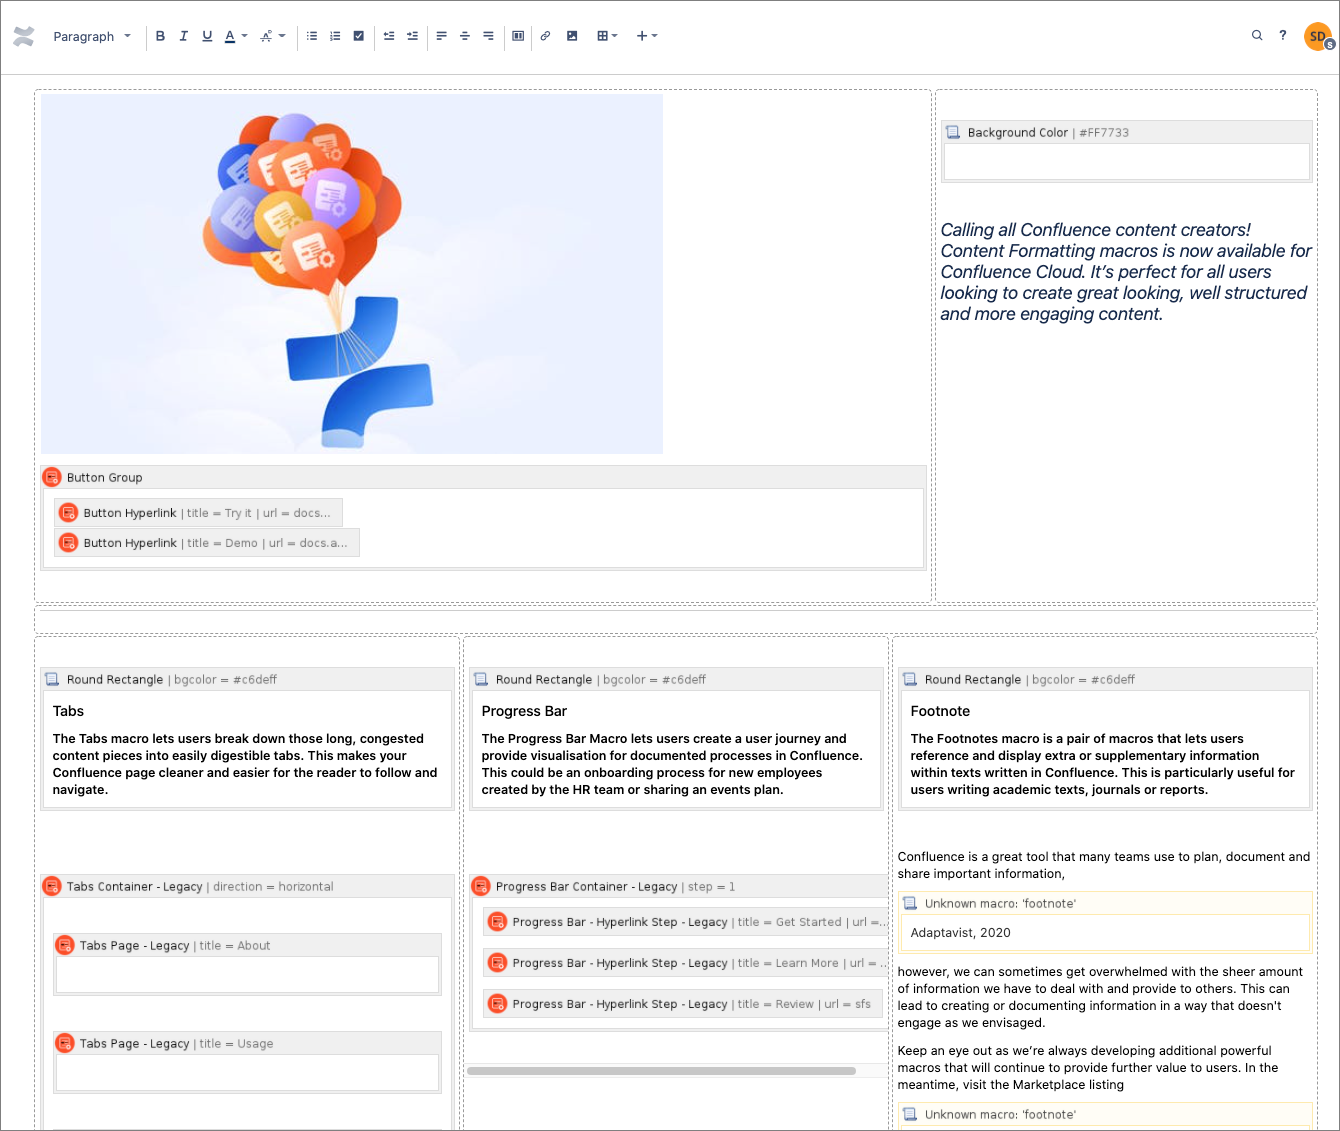 A migrated Confluence page in Edit view